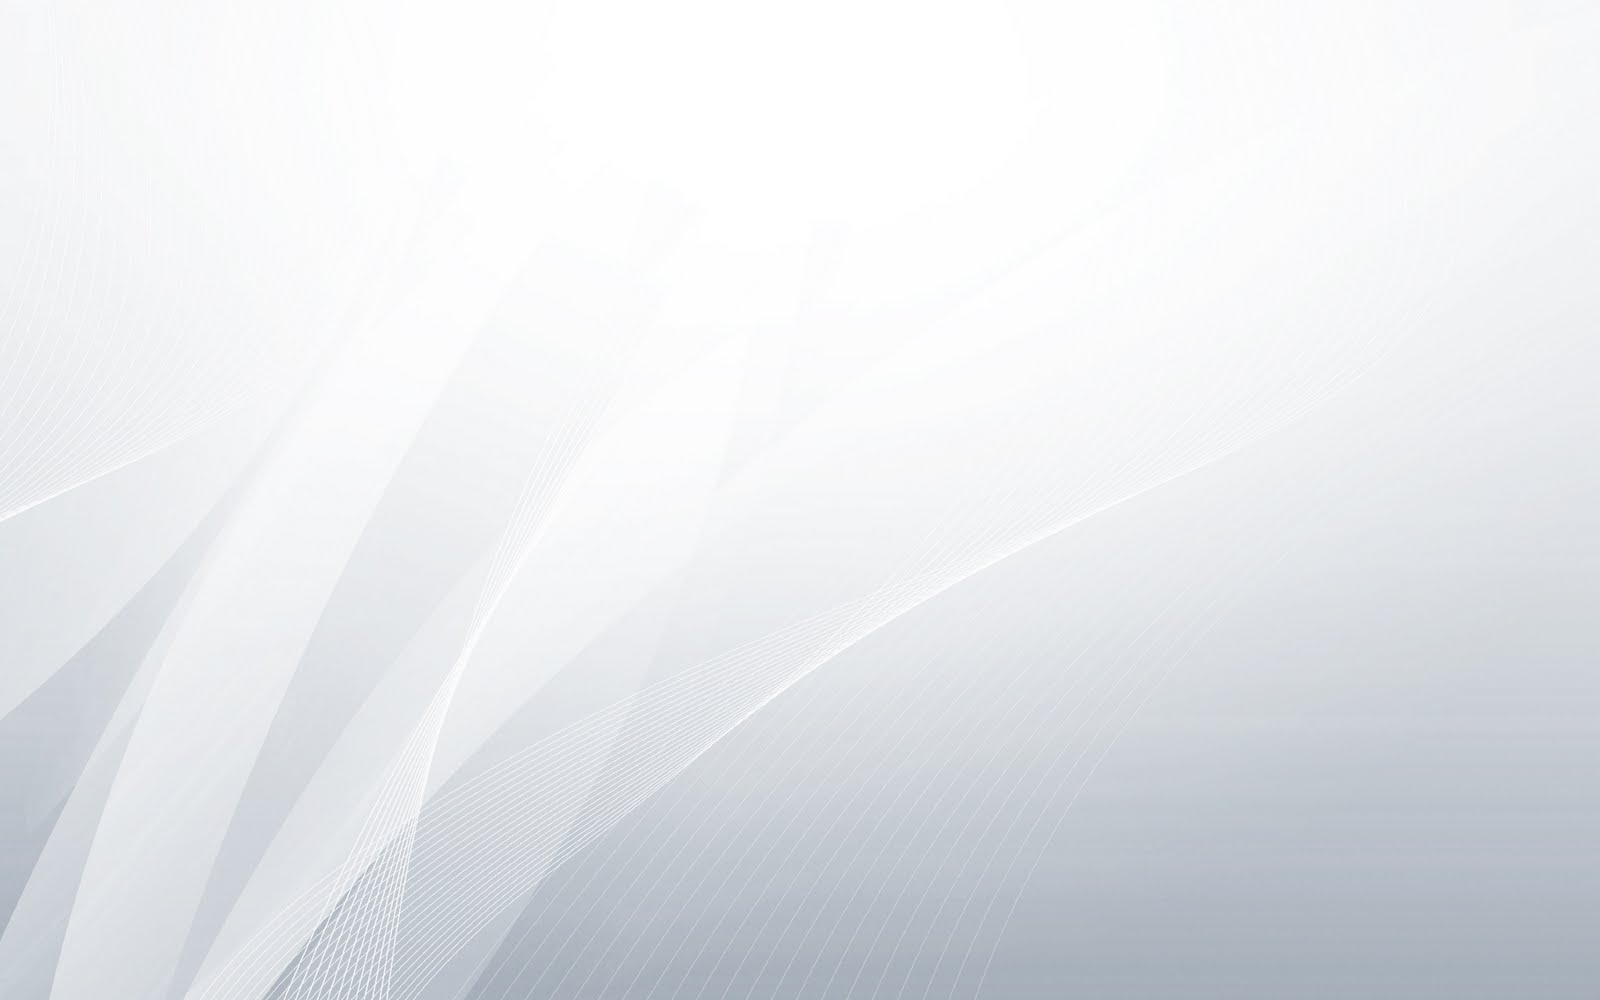 White_Background_Hd_04